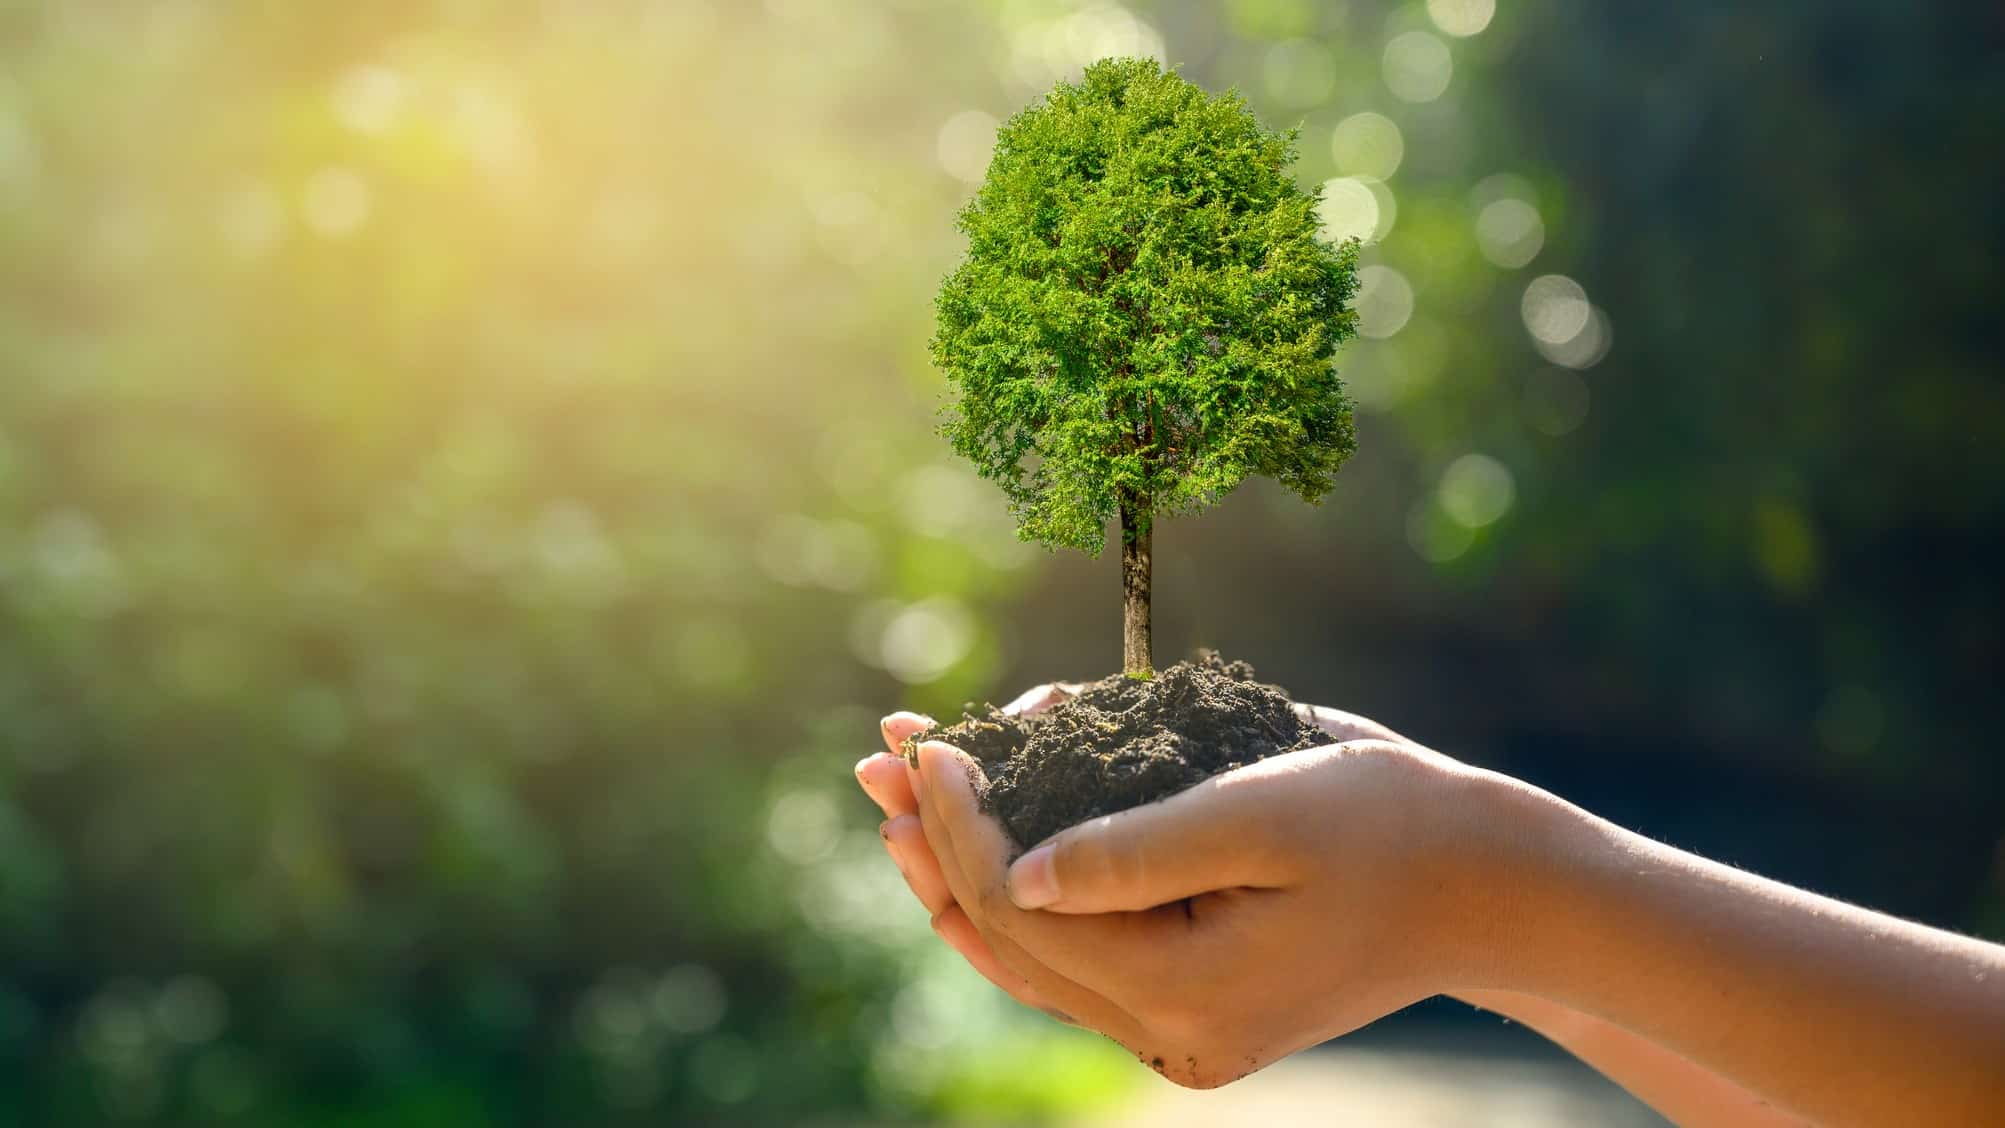 Nurturing hands carefully cup a tree, indicating a share price in an ASX forestry company